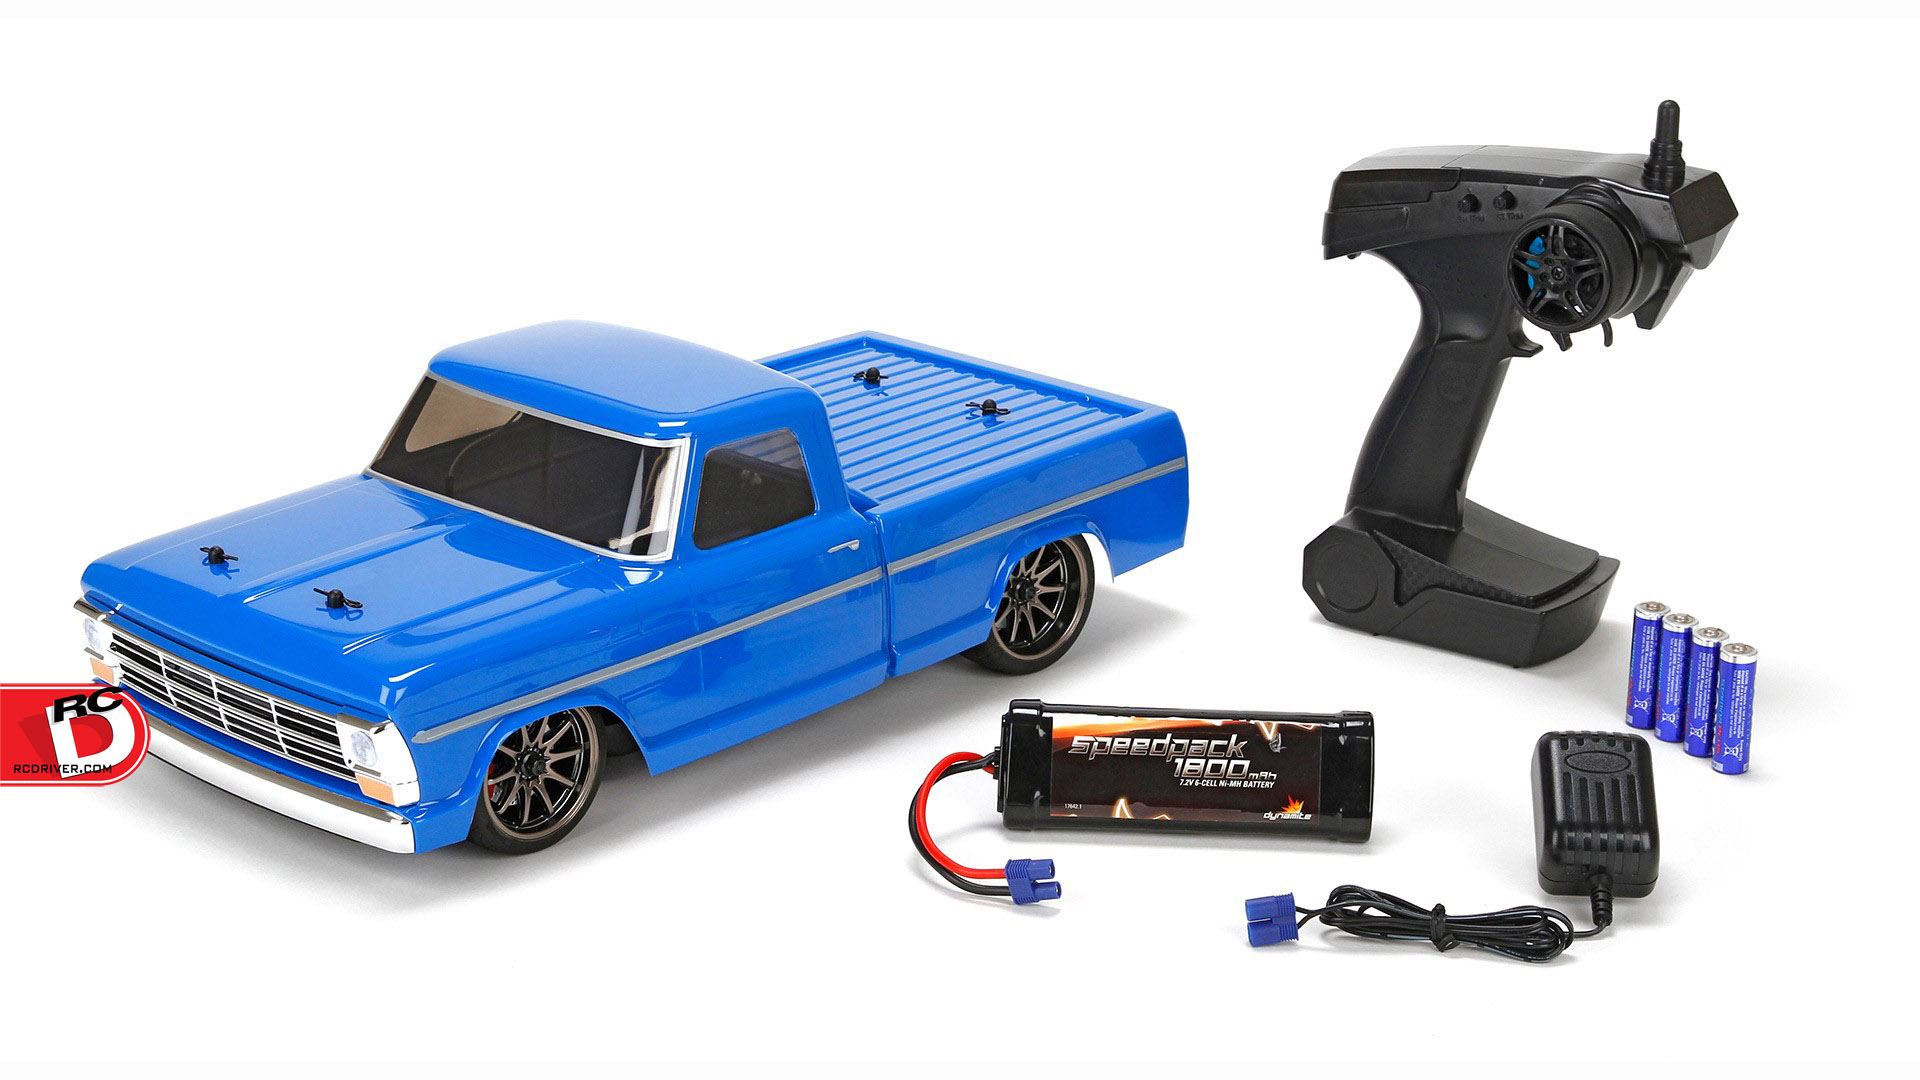 Vaterra - 1968 Ford F-100 Pick Up Truck V100-S RTR copy